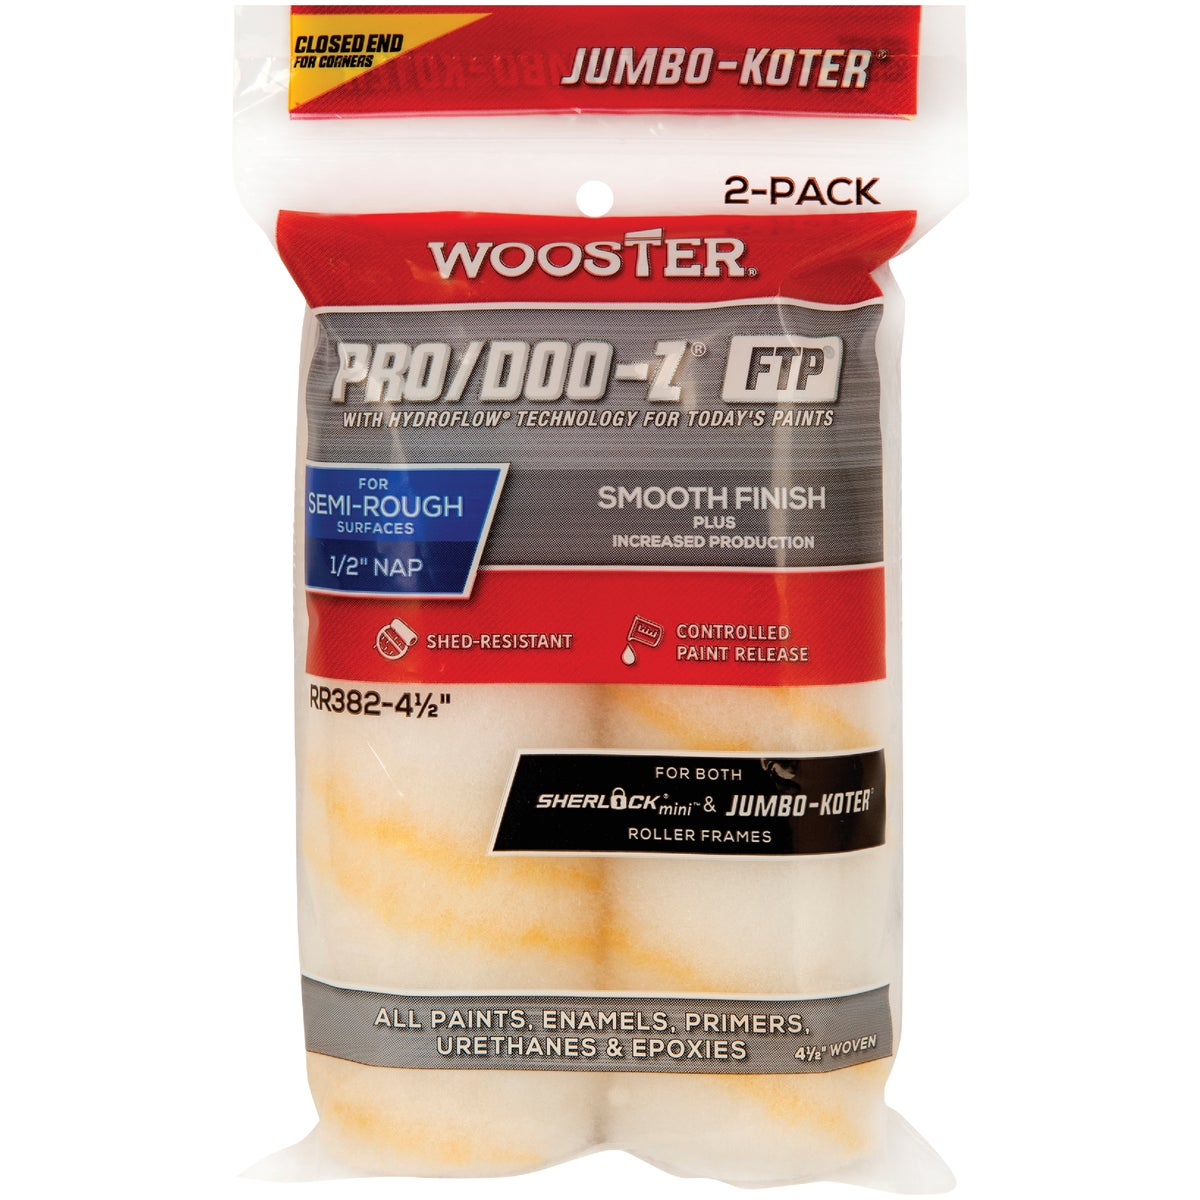 4-1/2X1/2 FTP ROLLER CVR - RR372-4-1/2 by Wooster Brush Co